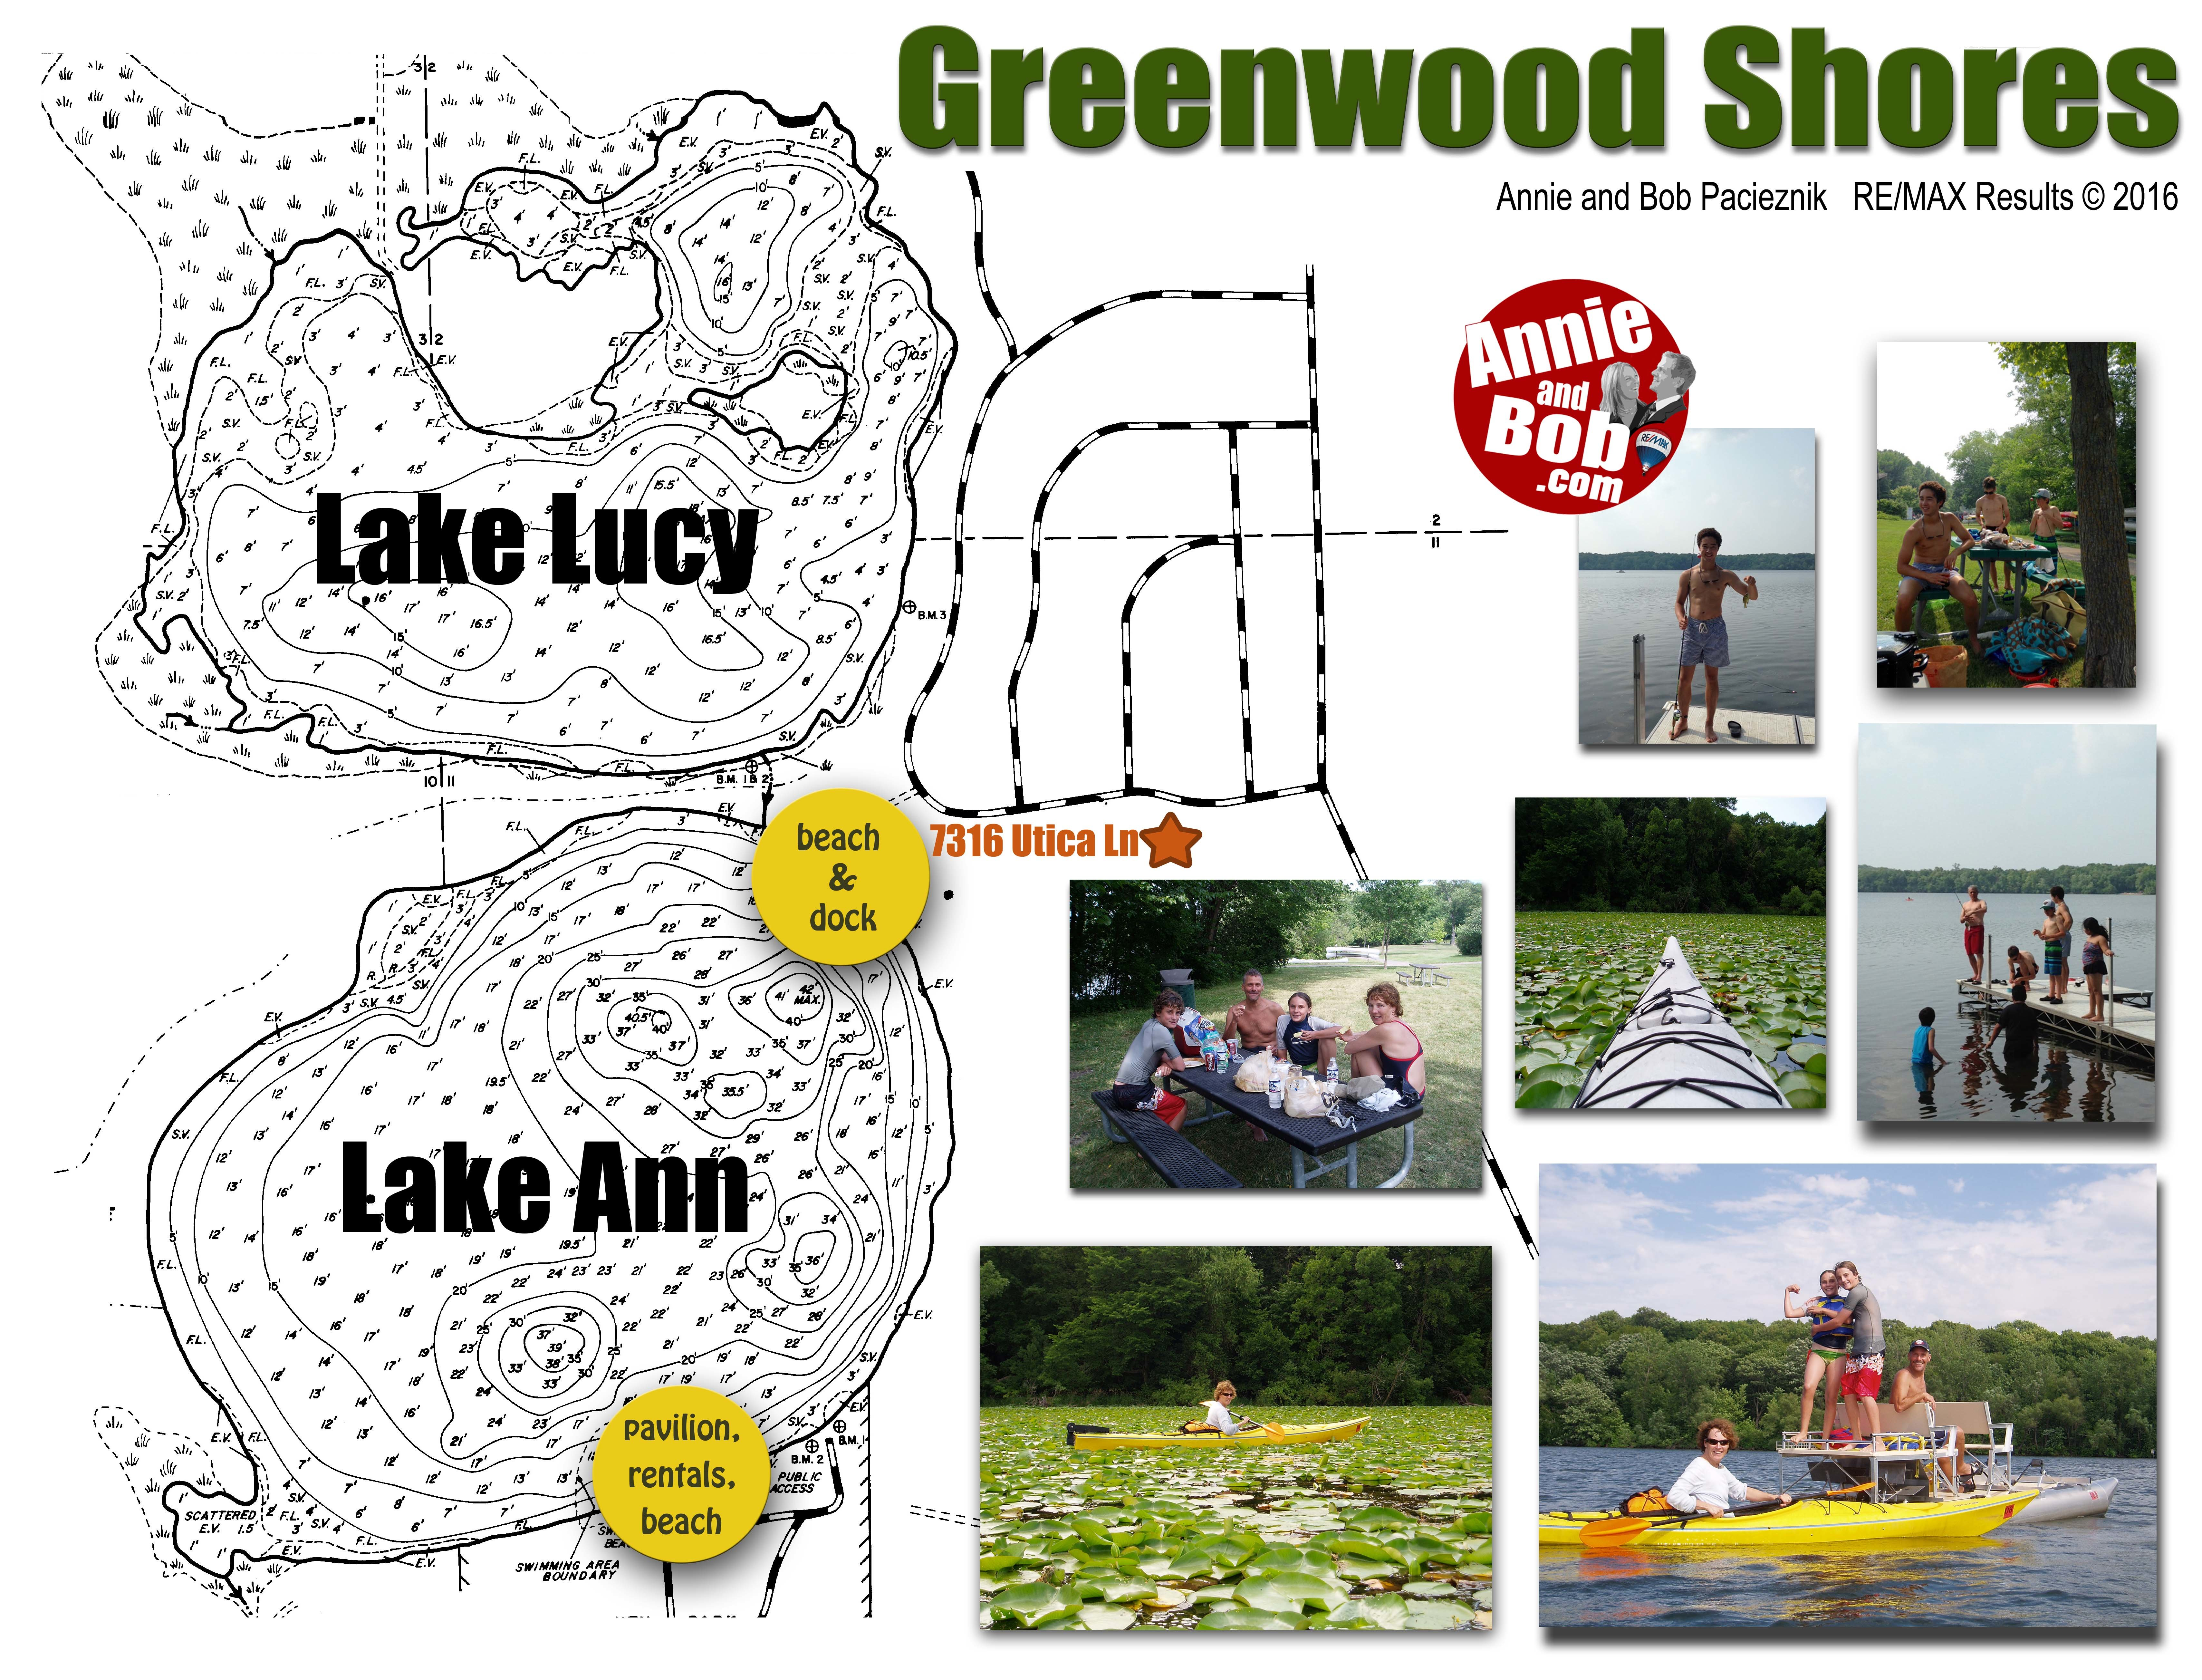 Greenwood Shores Chanhassen